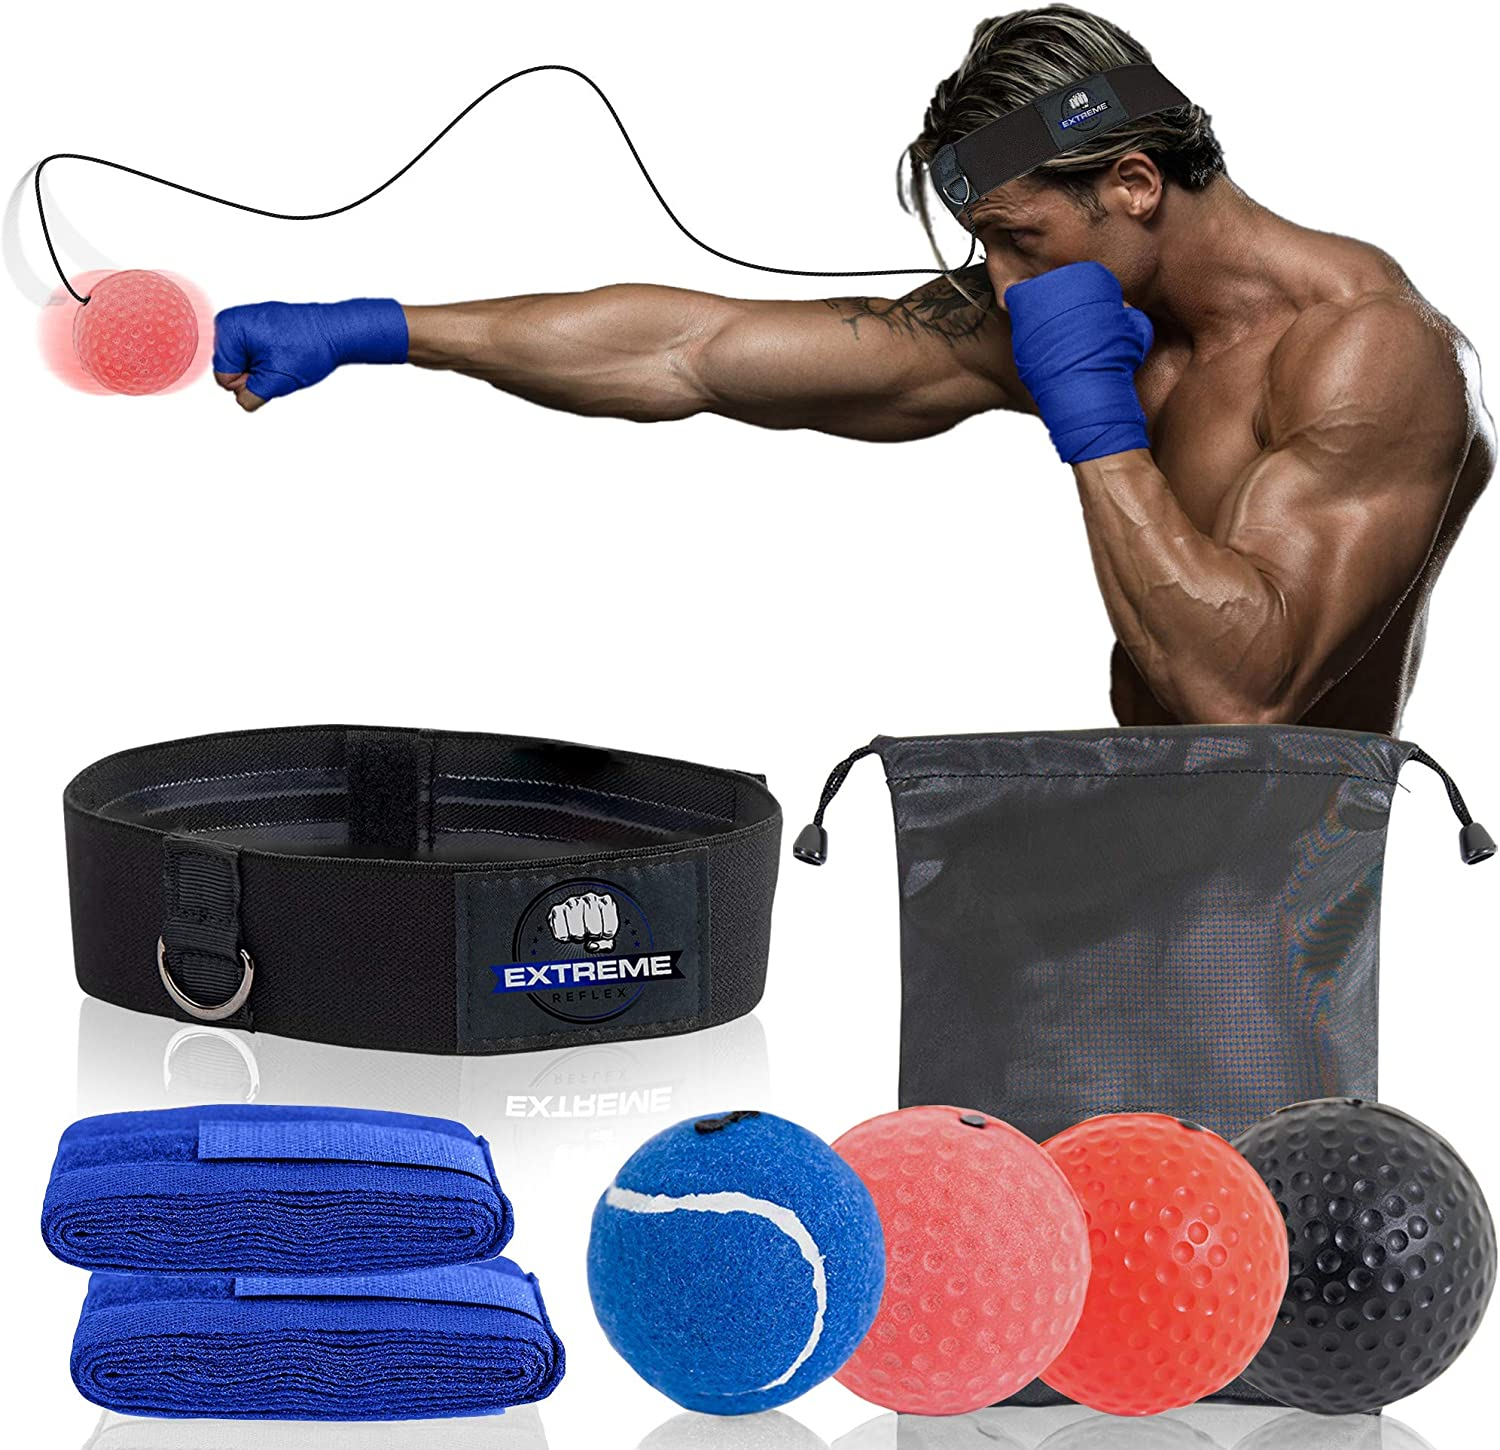 Extreme Reflex Boxing Reflex Ball Set - MMA Boxing Reflex Ball - Boxing Equipment Fight Speed, Boxing Punching Ball Great for Reaction Speed and Hand Eye Coordination Training Reflex Bag Alternative : Sports & Outdoors